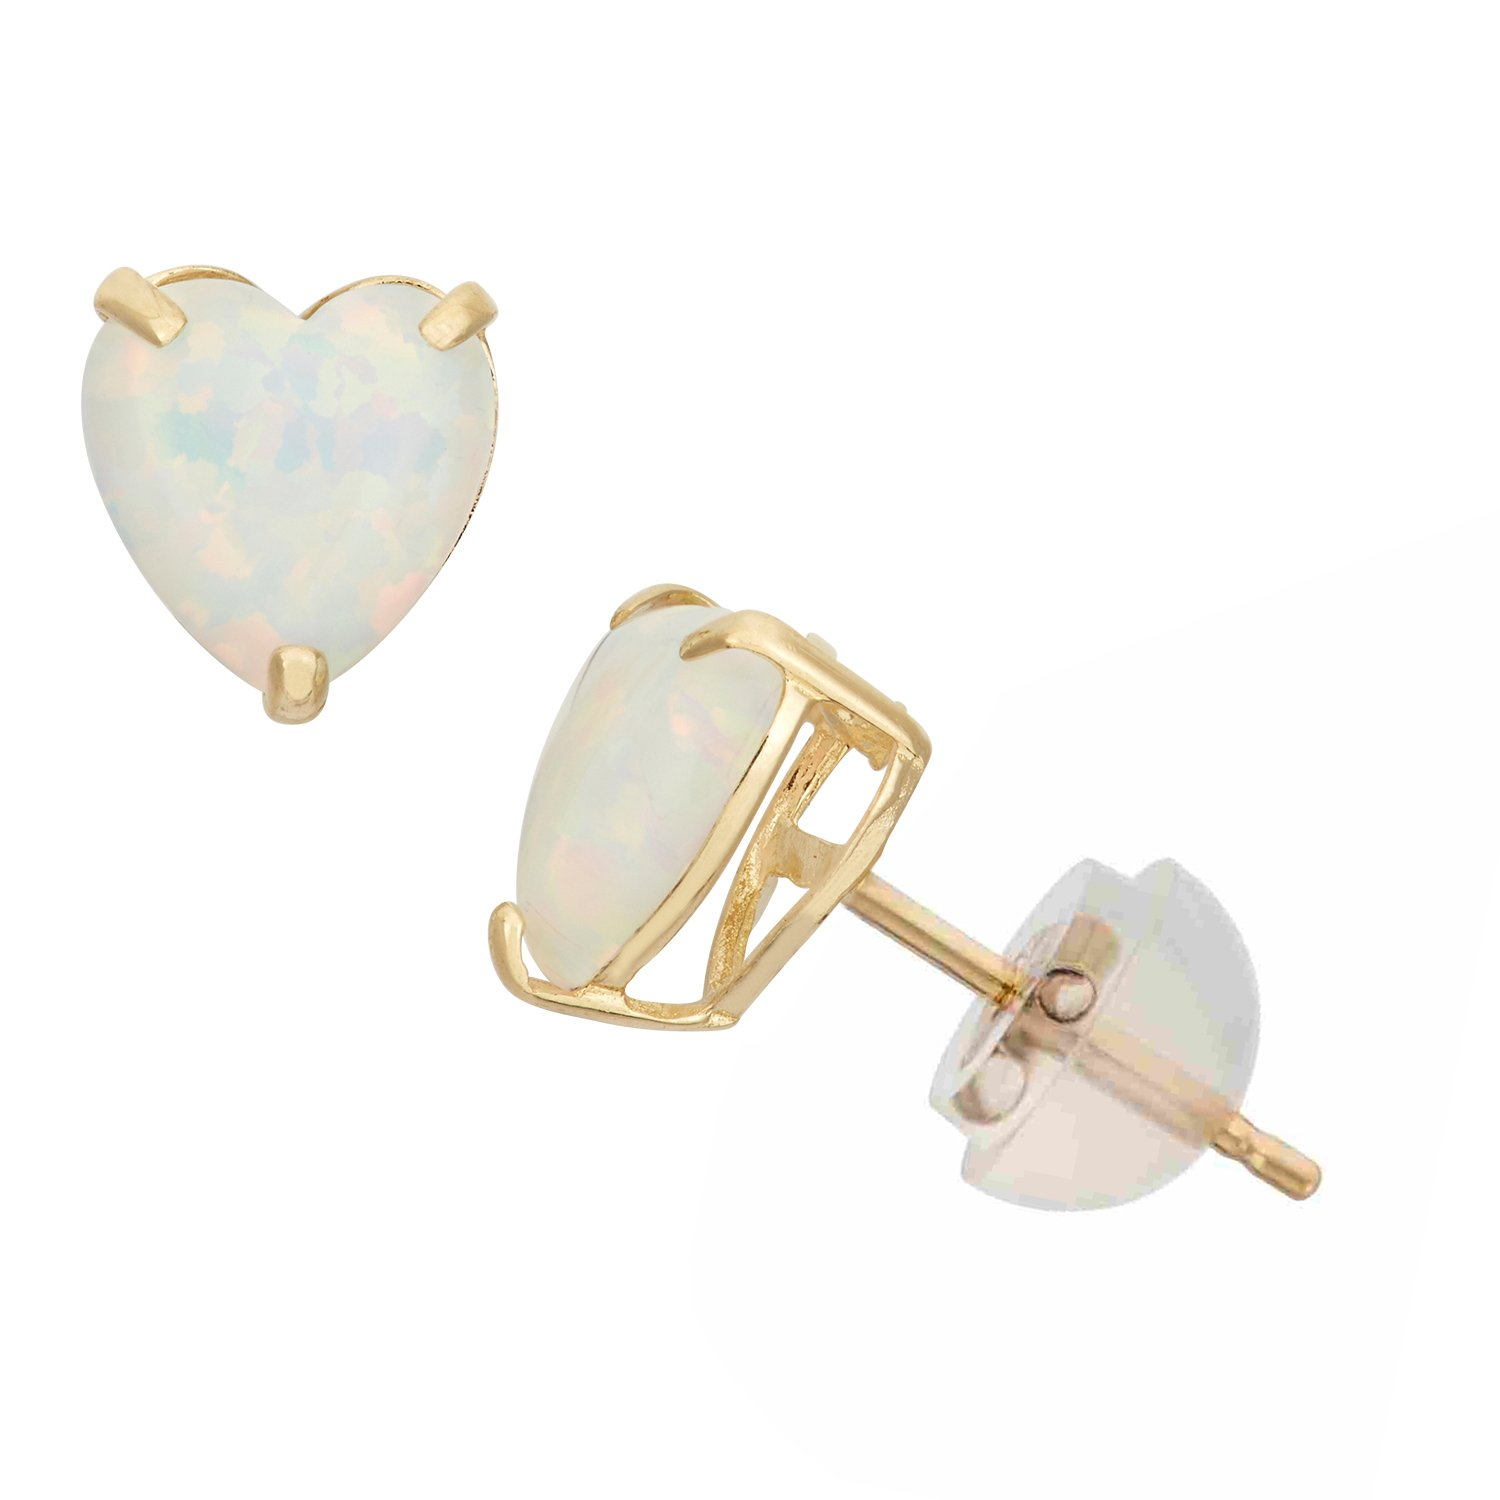 Synthetic Opal Heart Shape Stud Earrings in 10K Yellow Gold, 6mm, Comfort Fit